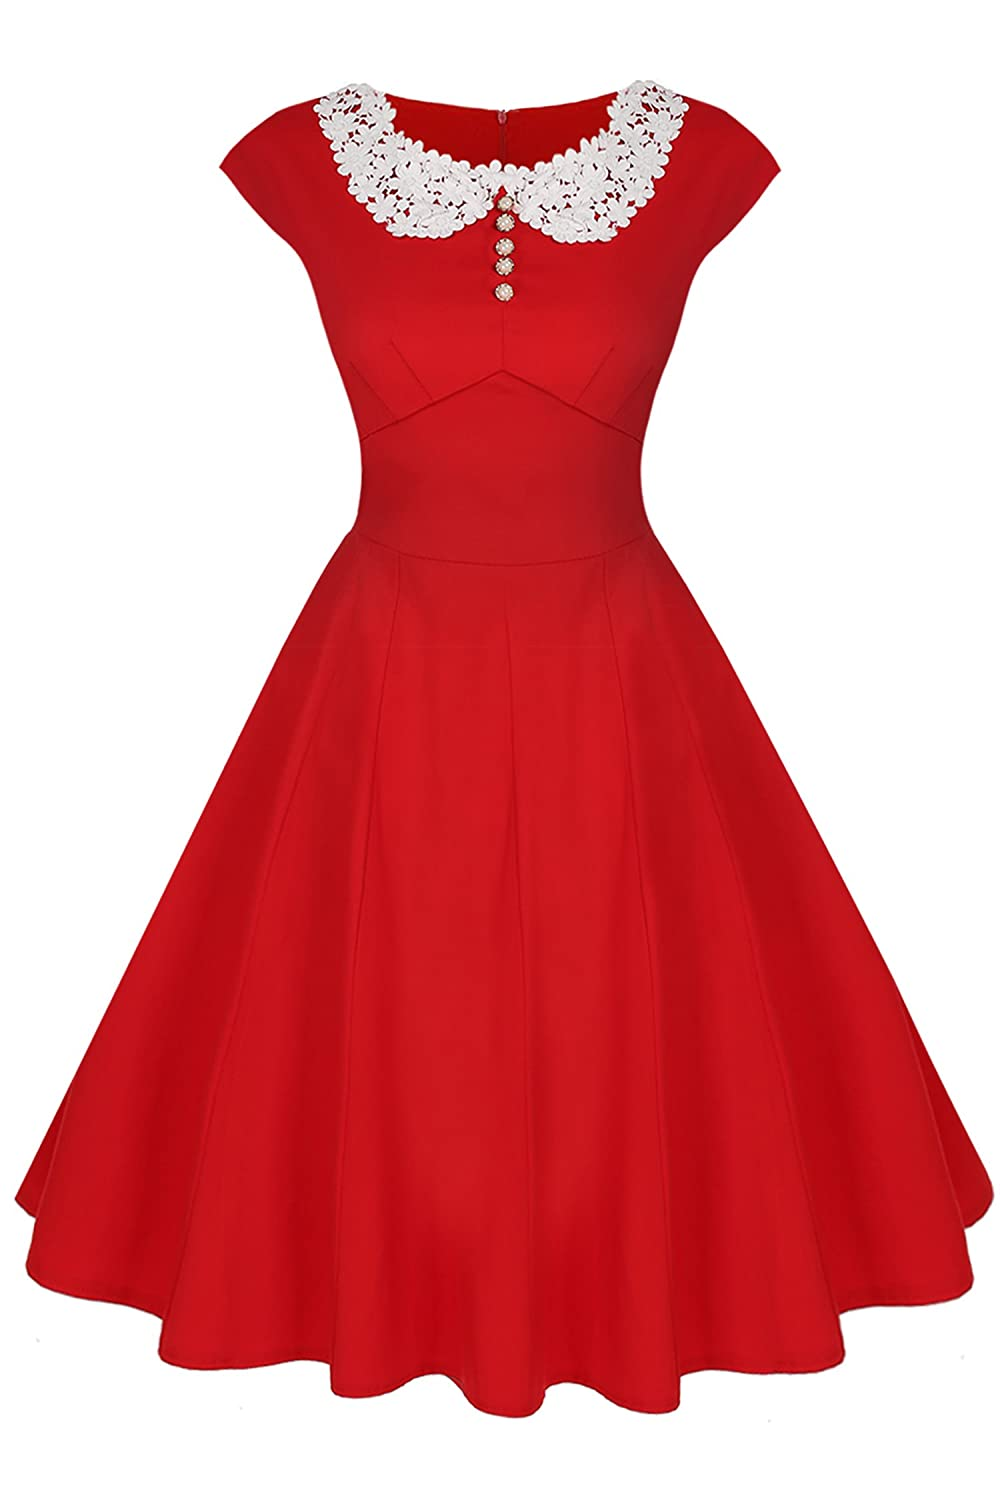 1950s Costumes- Poodle Skirts, Grease, Monroe, Pin Up, I Love Lucy ACEVOG Womens Classy Vintage Audrey Hepburn Style 1940s Rockabilly Evening Dress $19.99 AT vintagedancer.com